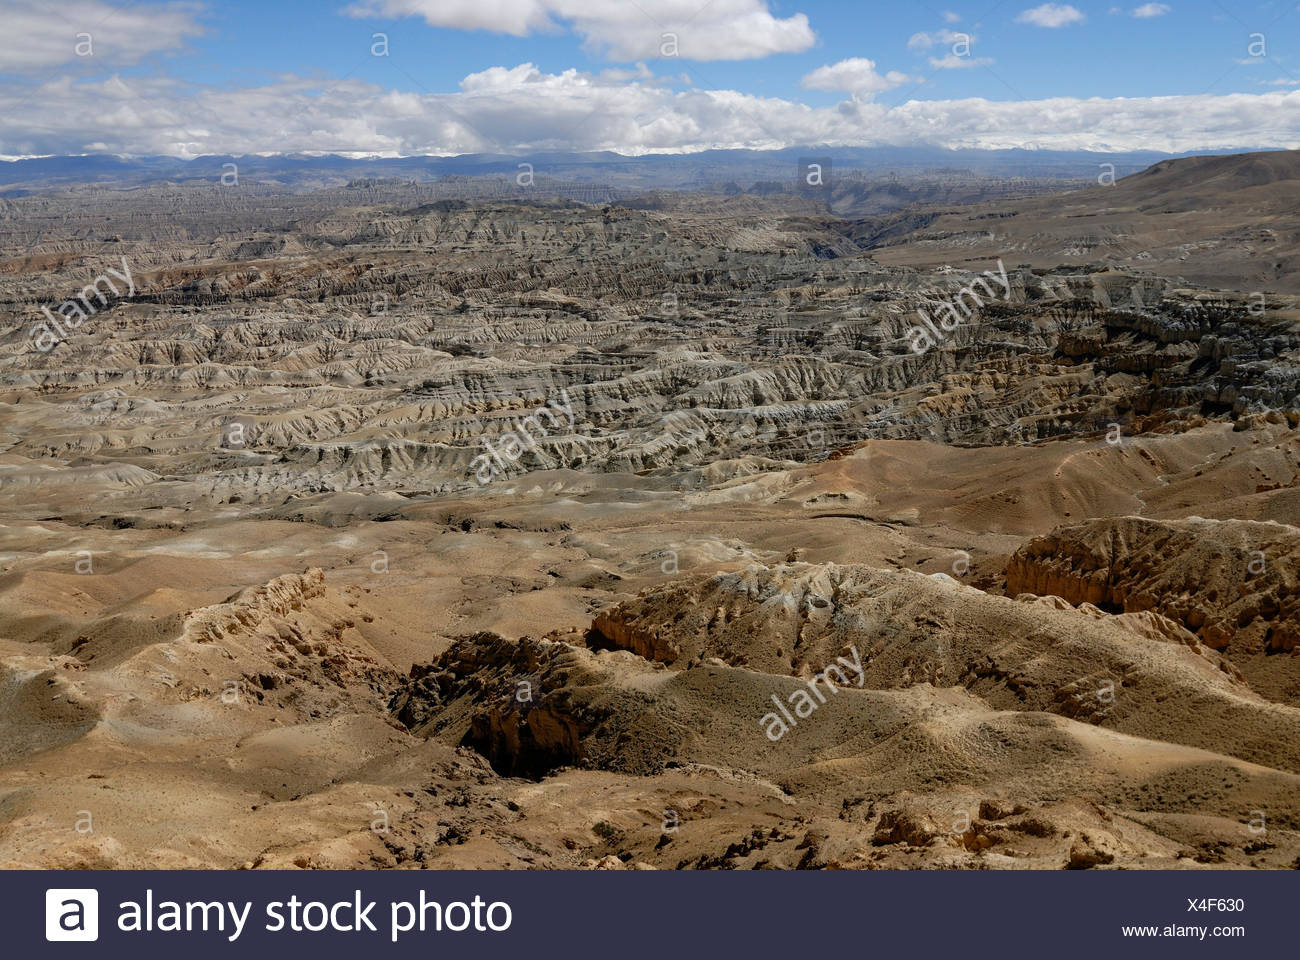 Canyon landscape around the Sutlej River in front of the Himalayan main ridge in the ancient Kingdom of Guge in Western Tibet - Stock Image